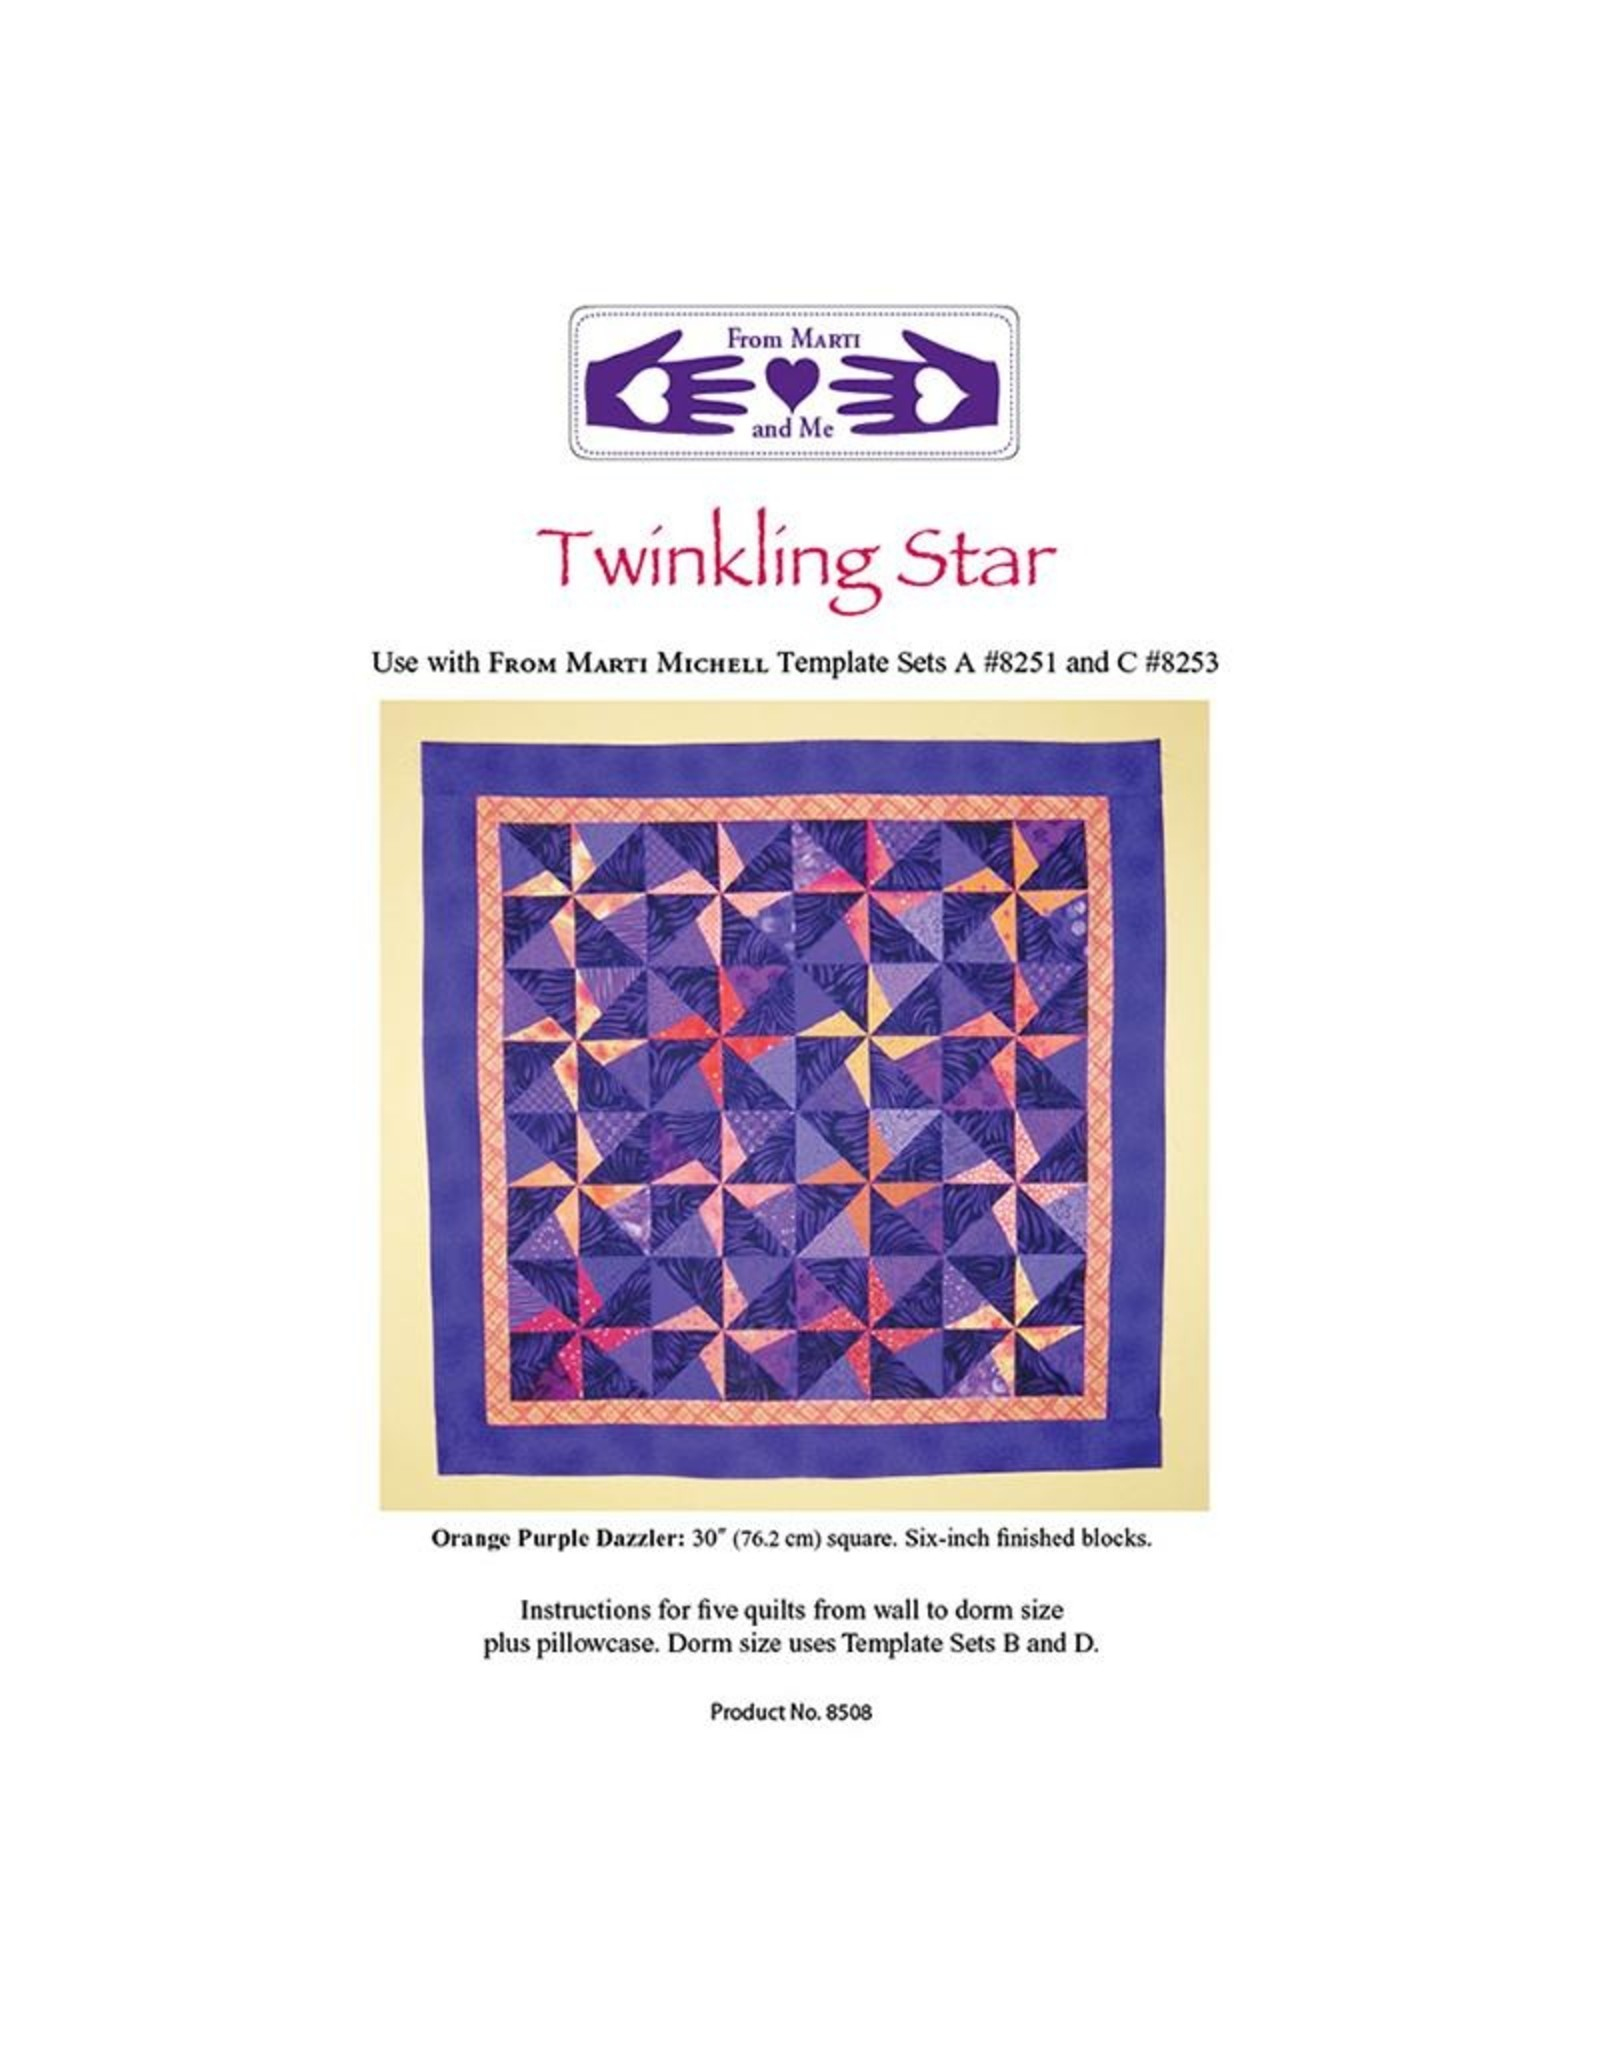 Marti Michell From Marti and Me - Twinkling Star